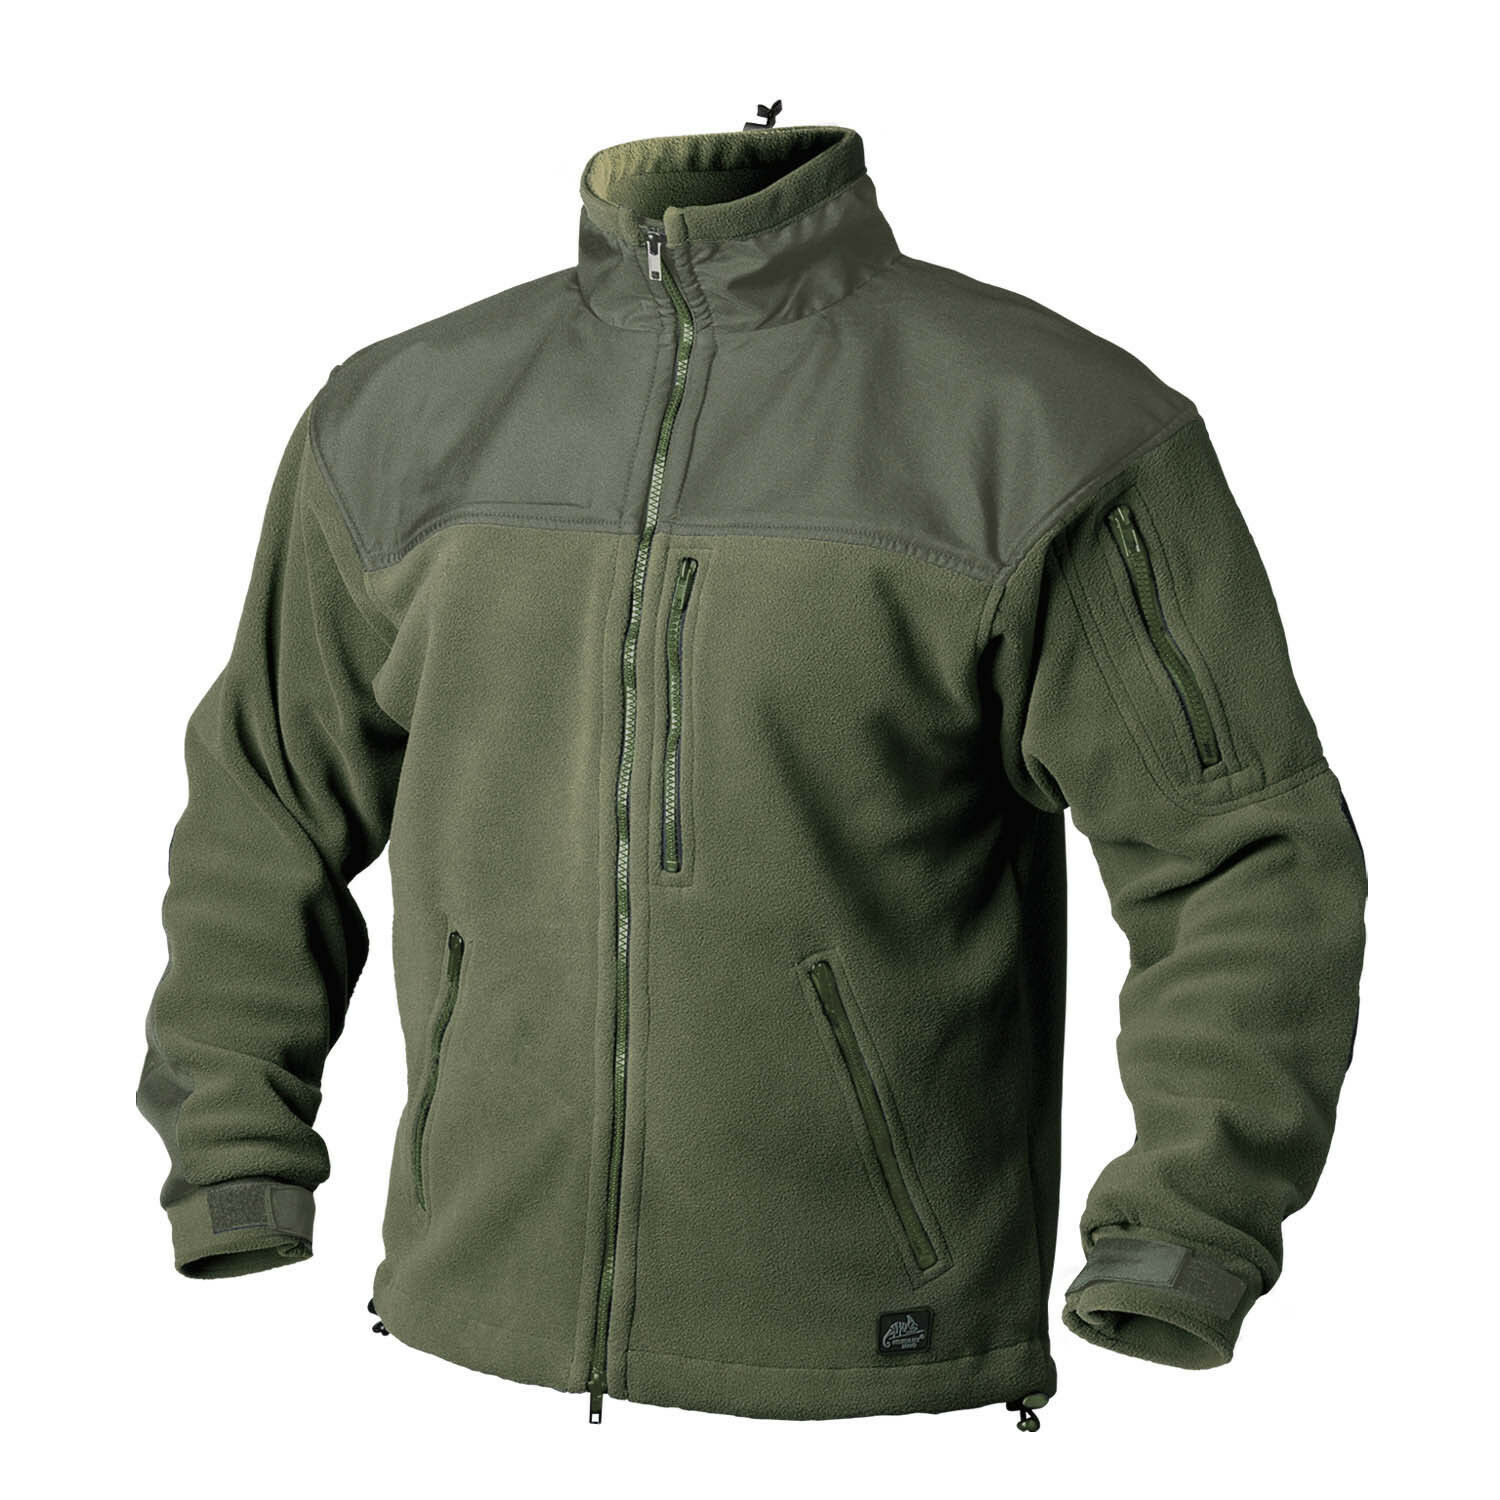 Helikon TEX CLASSIC CLASSIC CLASSIC 300er ARMY OUTDOOR PILE GIACCA JACKET verde Oliva verde S SMALL 741d09